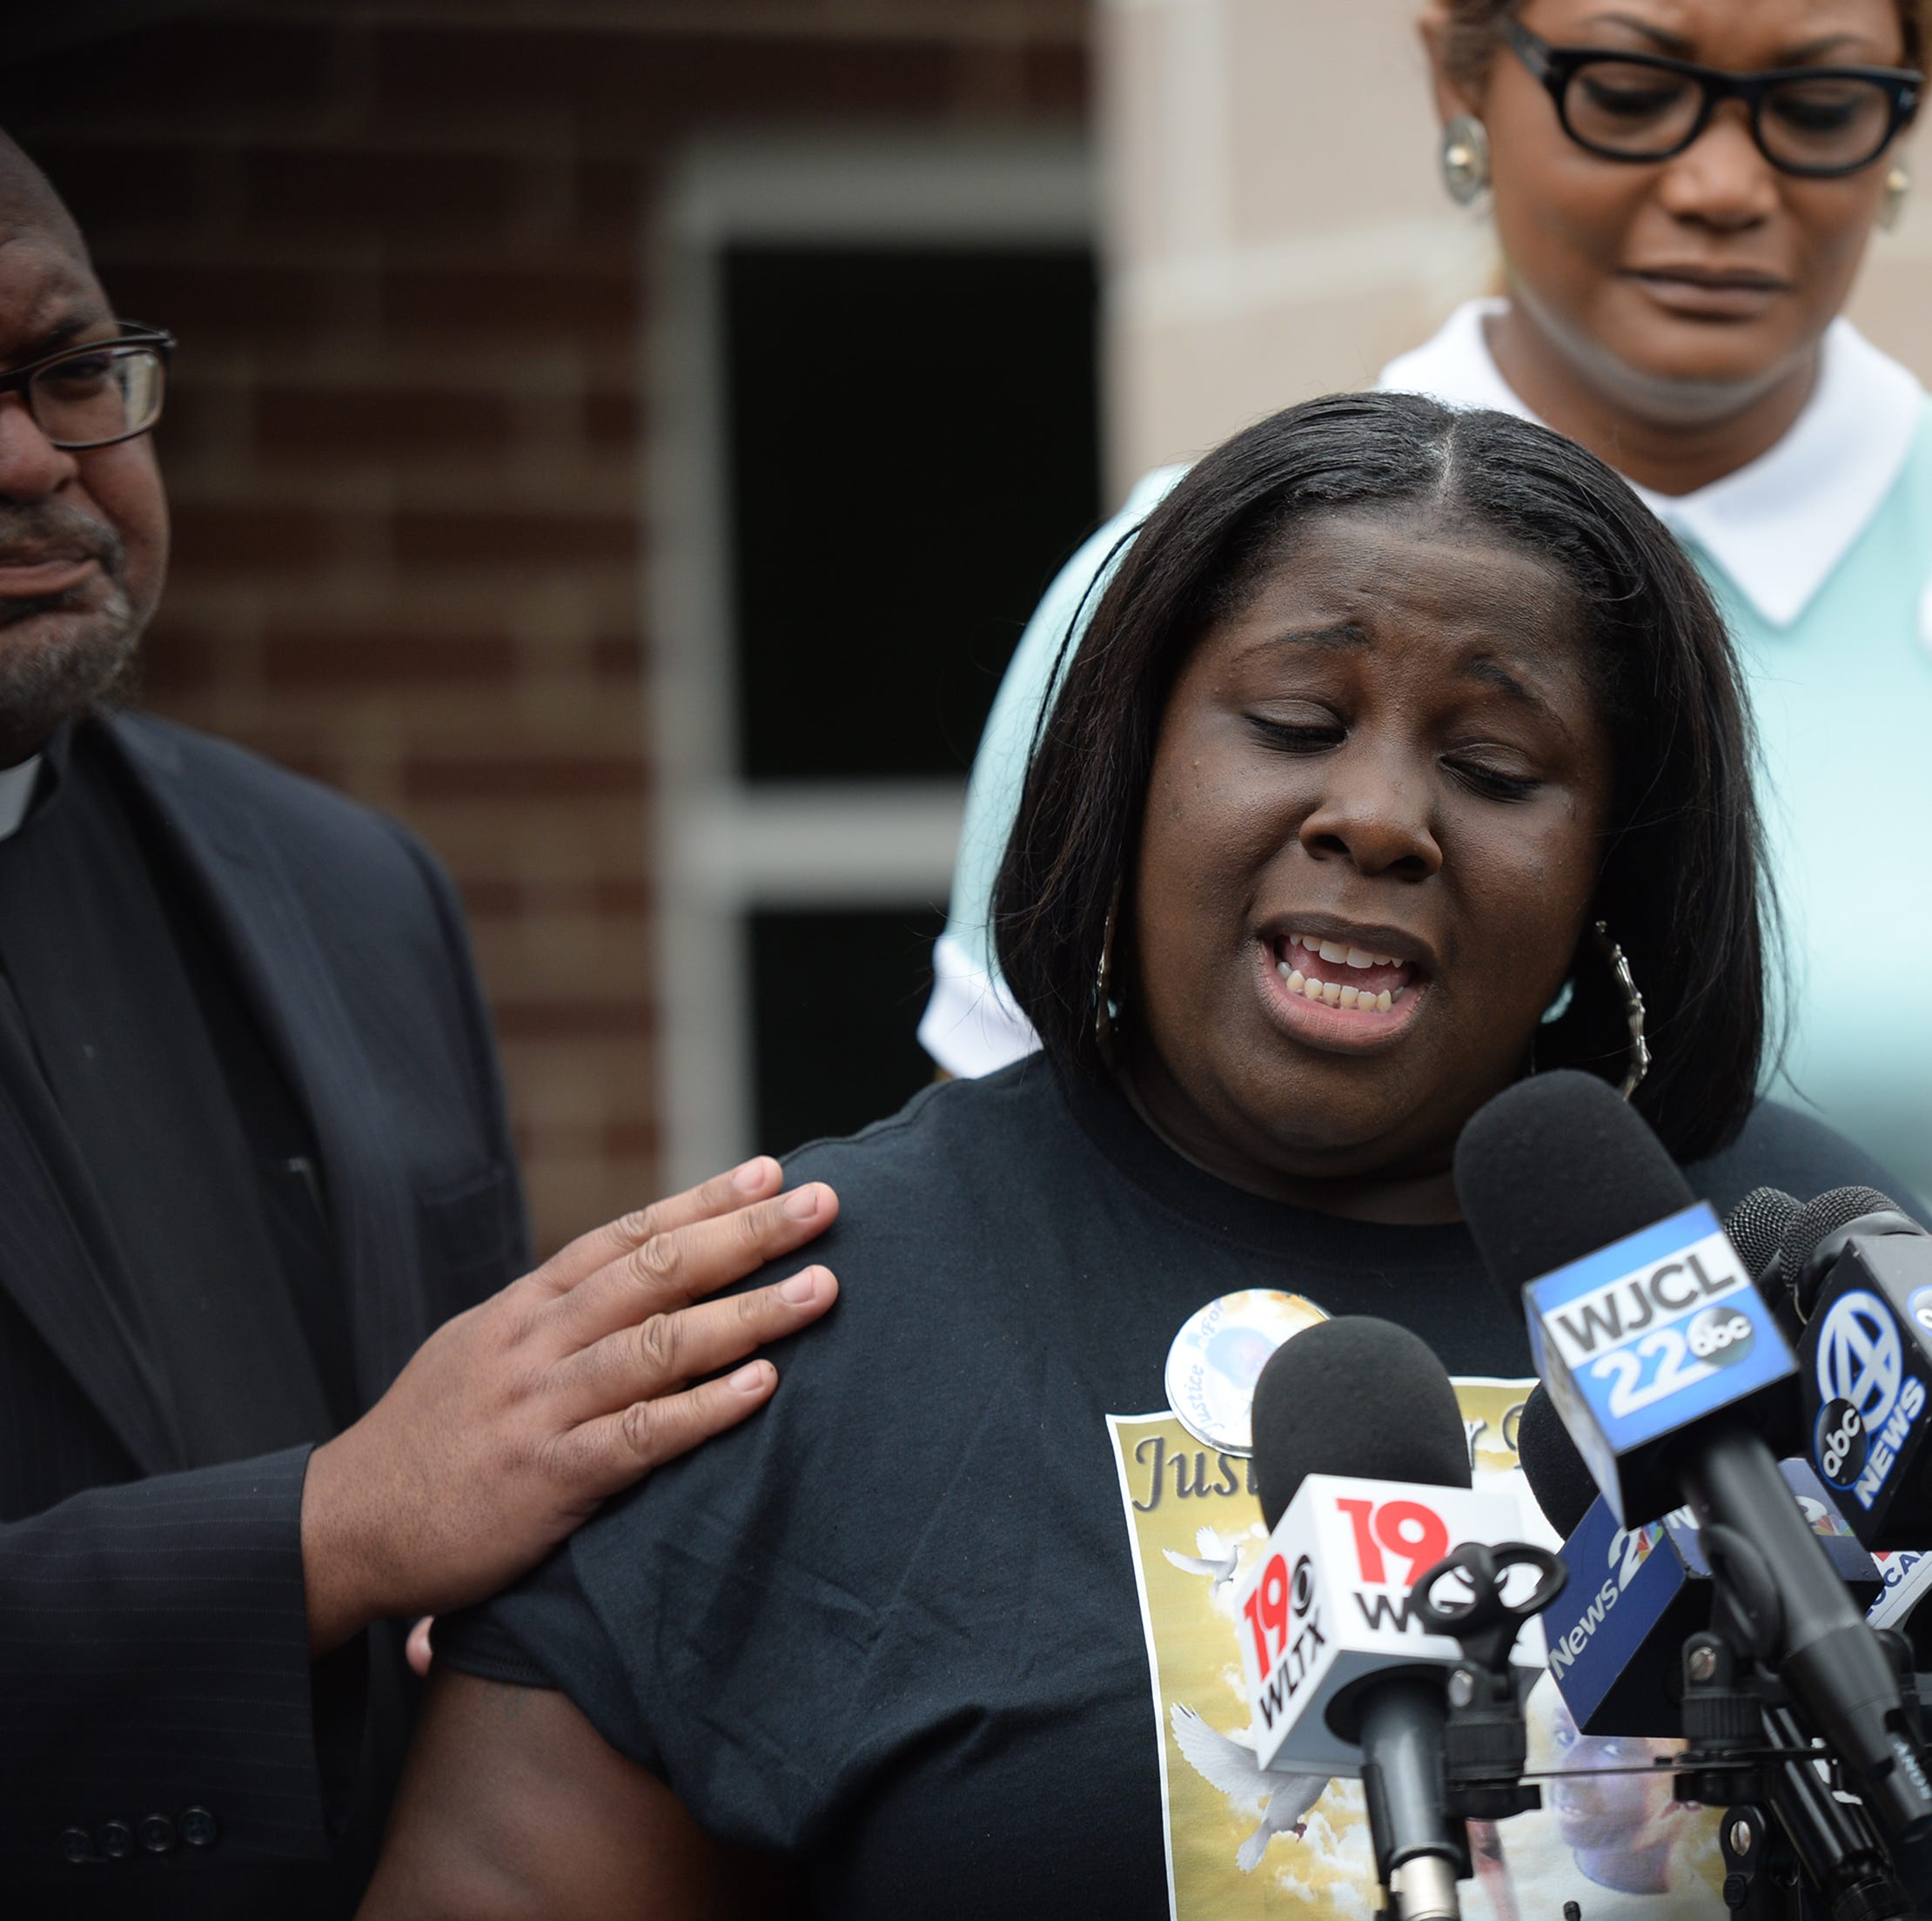 Raniya Wright's mother insists bullying was factor in 5th grader's death, doubts investigation